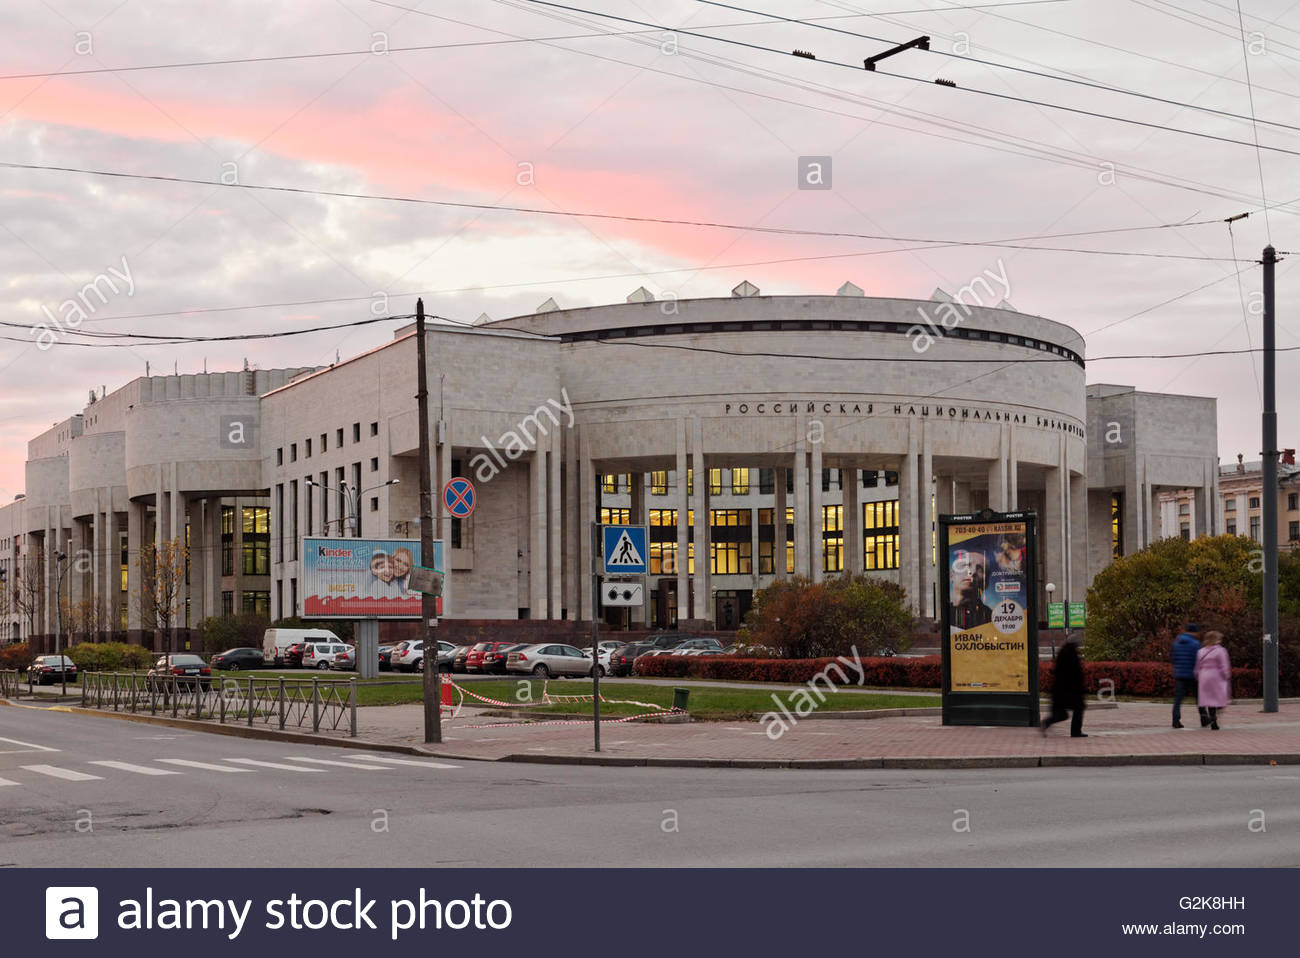 Russian National Library St. Petersburg, Building of Russian National Library in St. Petersburg, Russia ...